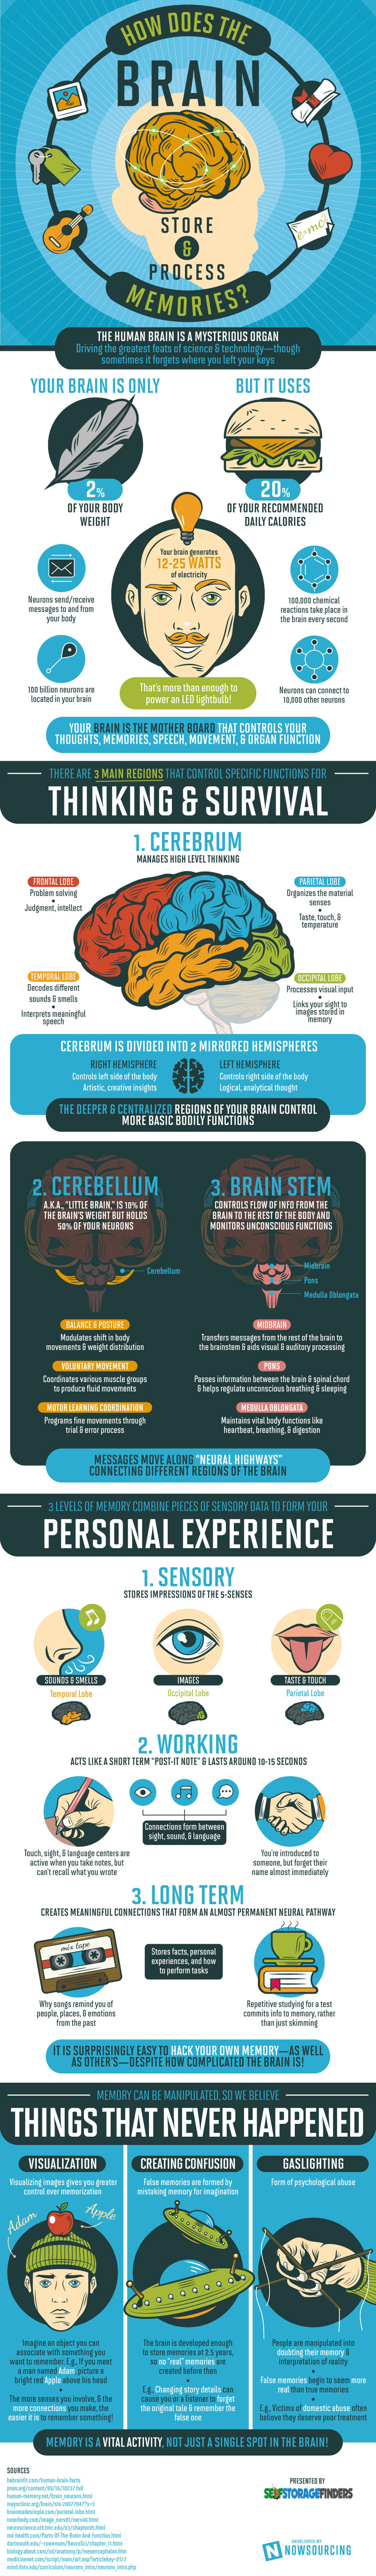 How the Human Brain Store Memories Infographic